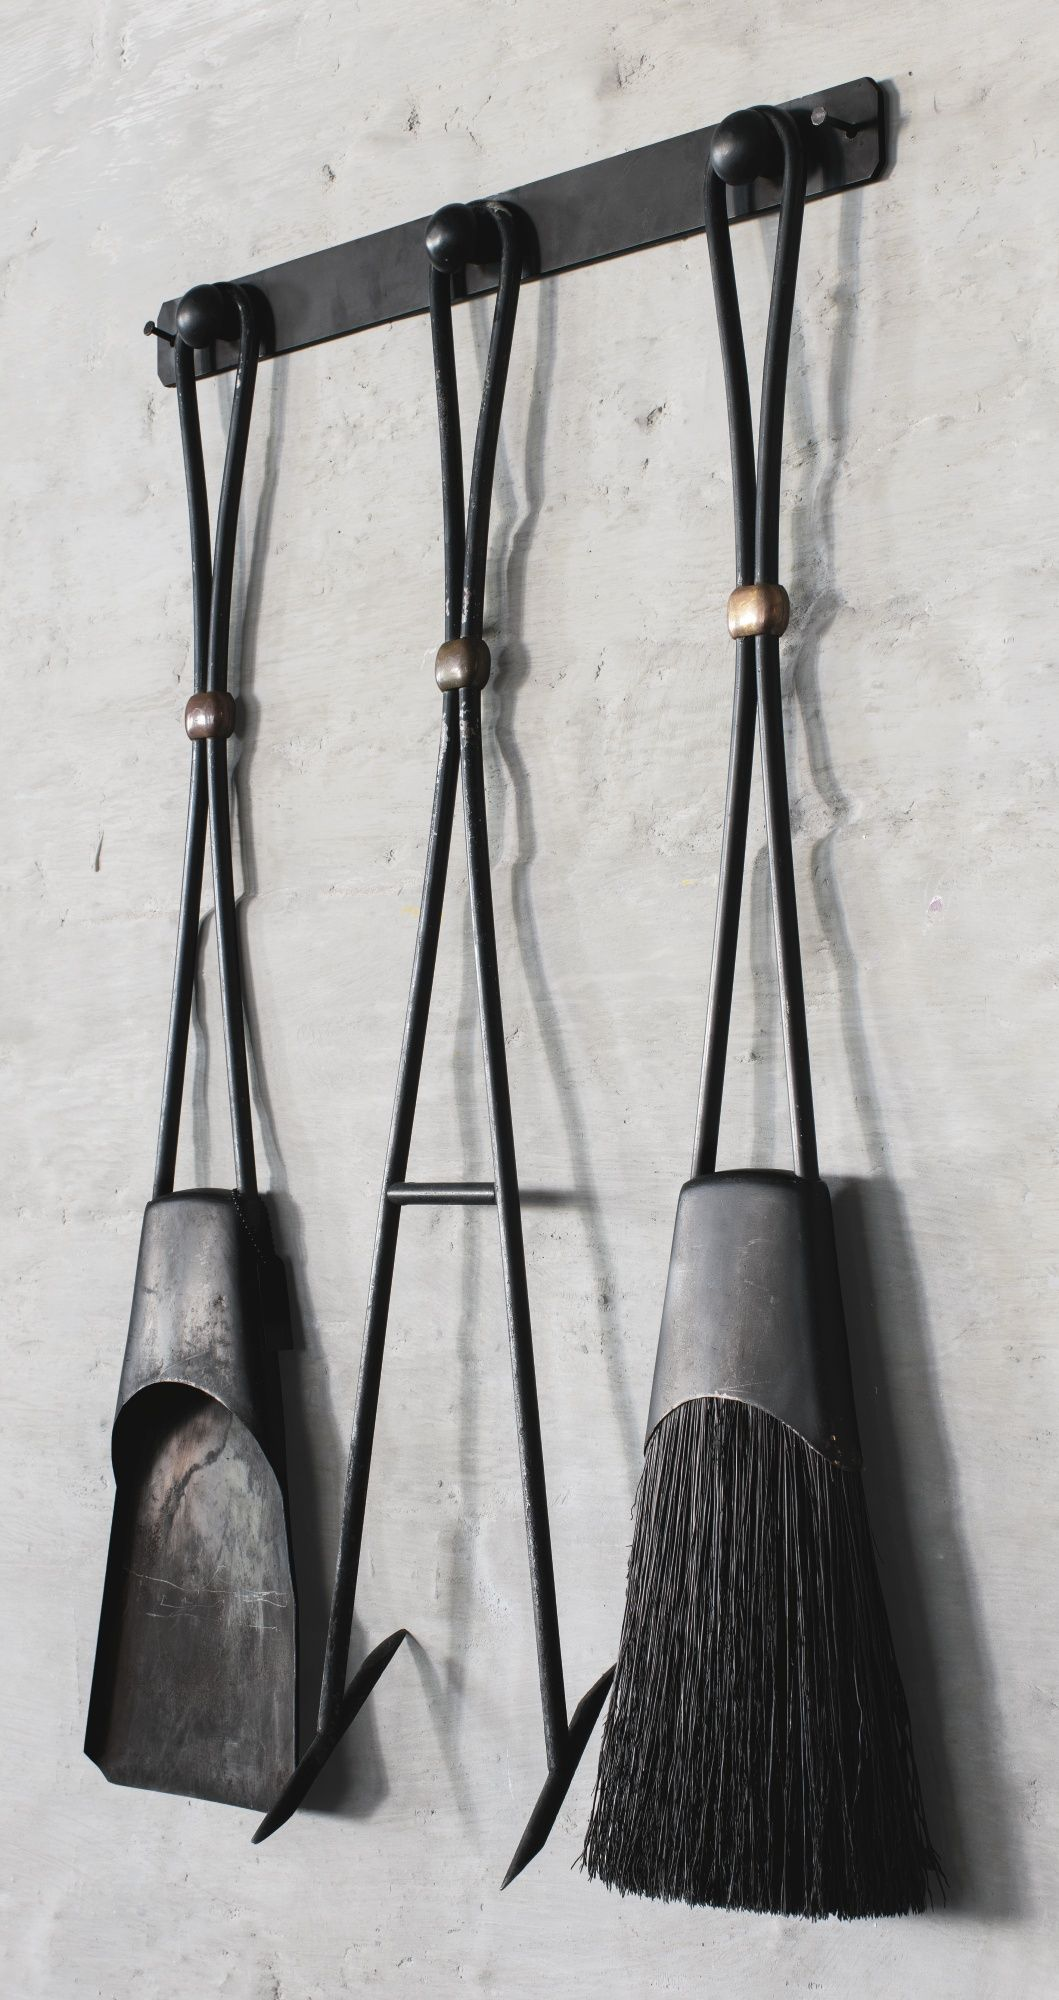 Fireplace Pokers Lates Jens Quistgaard Fireplace tools for Dansk C1960 Objected